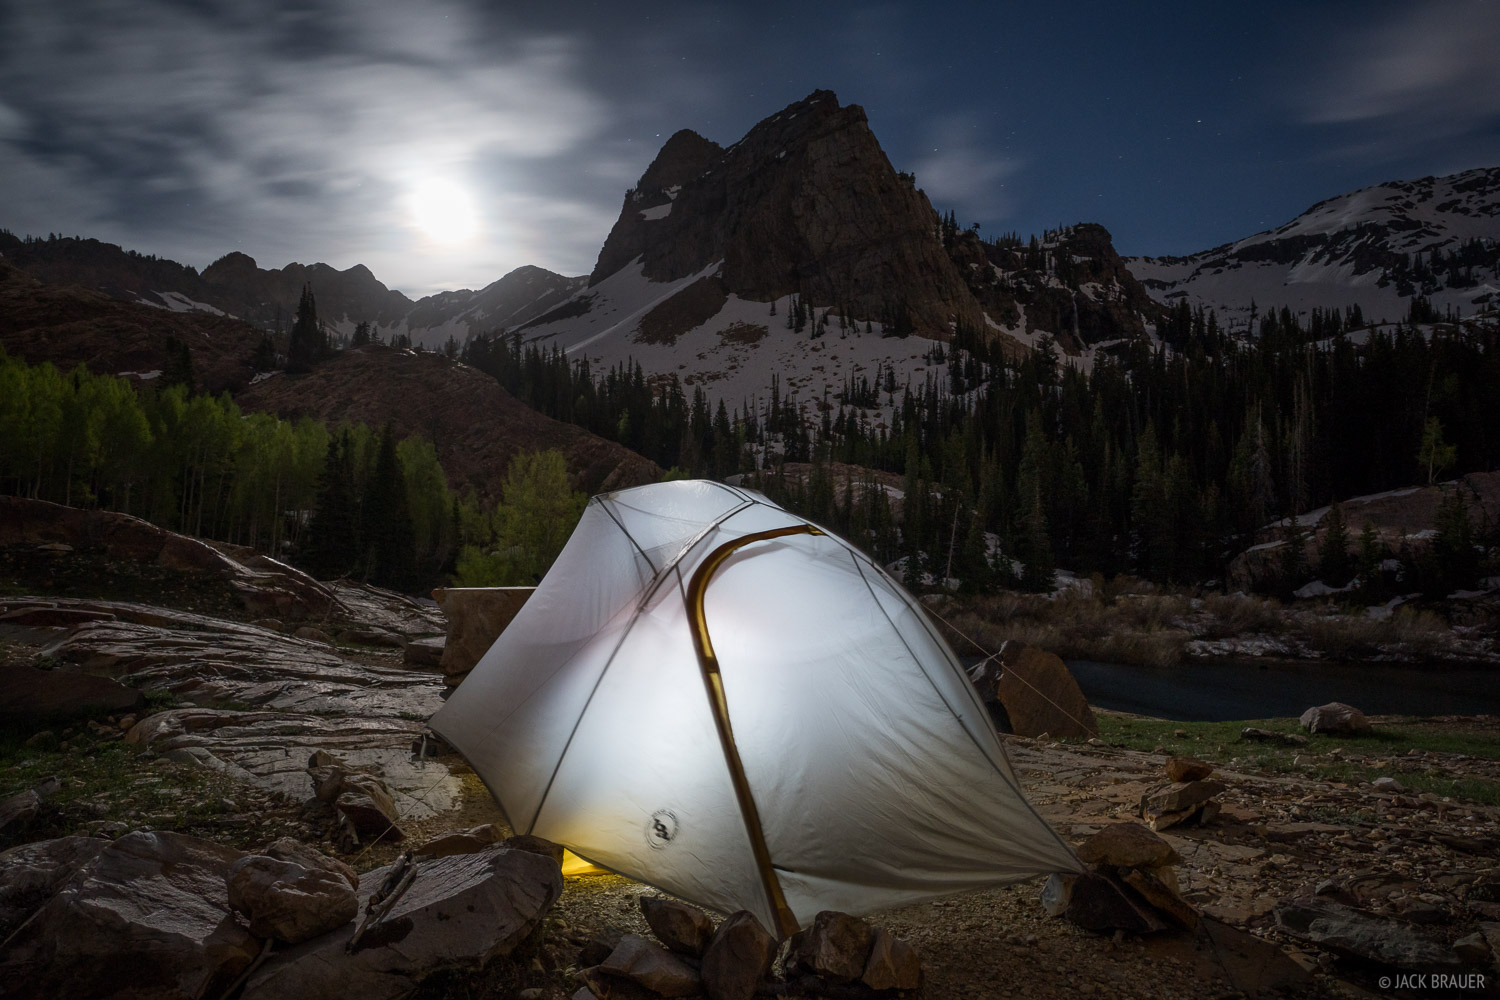 Lake Blanche, Sundial Peak, Twin Peaks Wilderness, Utah, Wasatch Range, moonlight, tent, photo